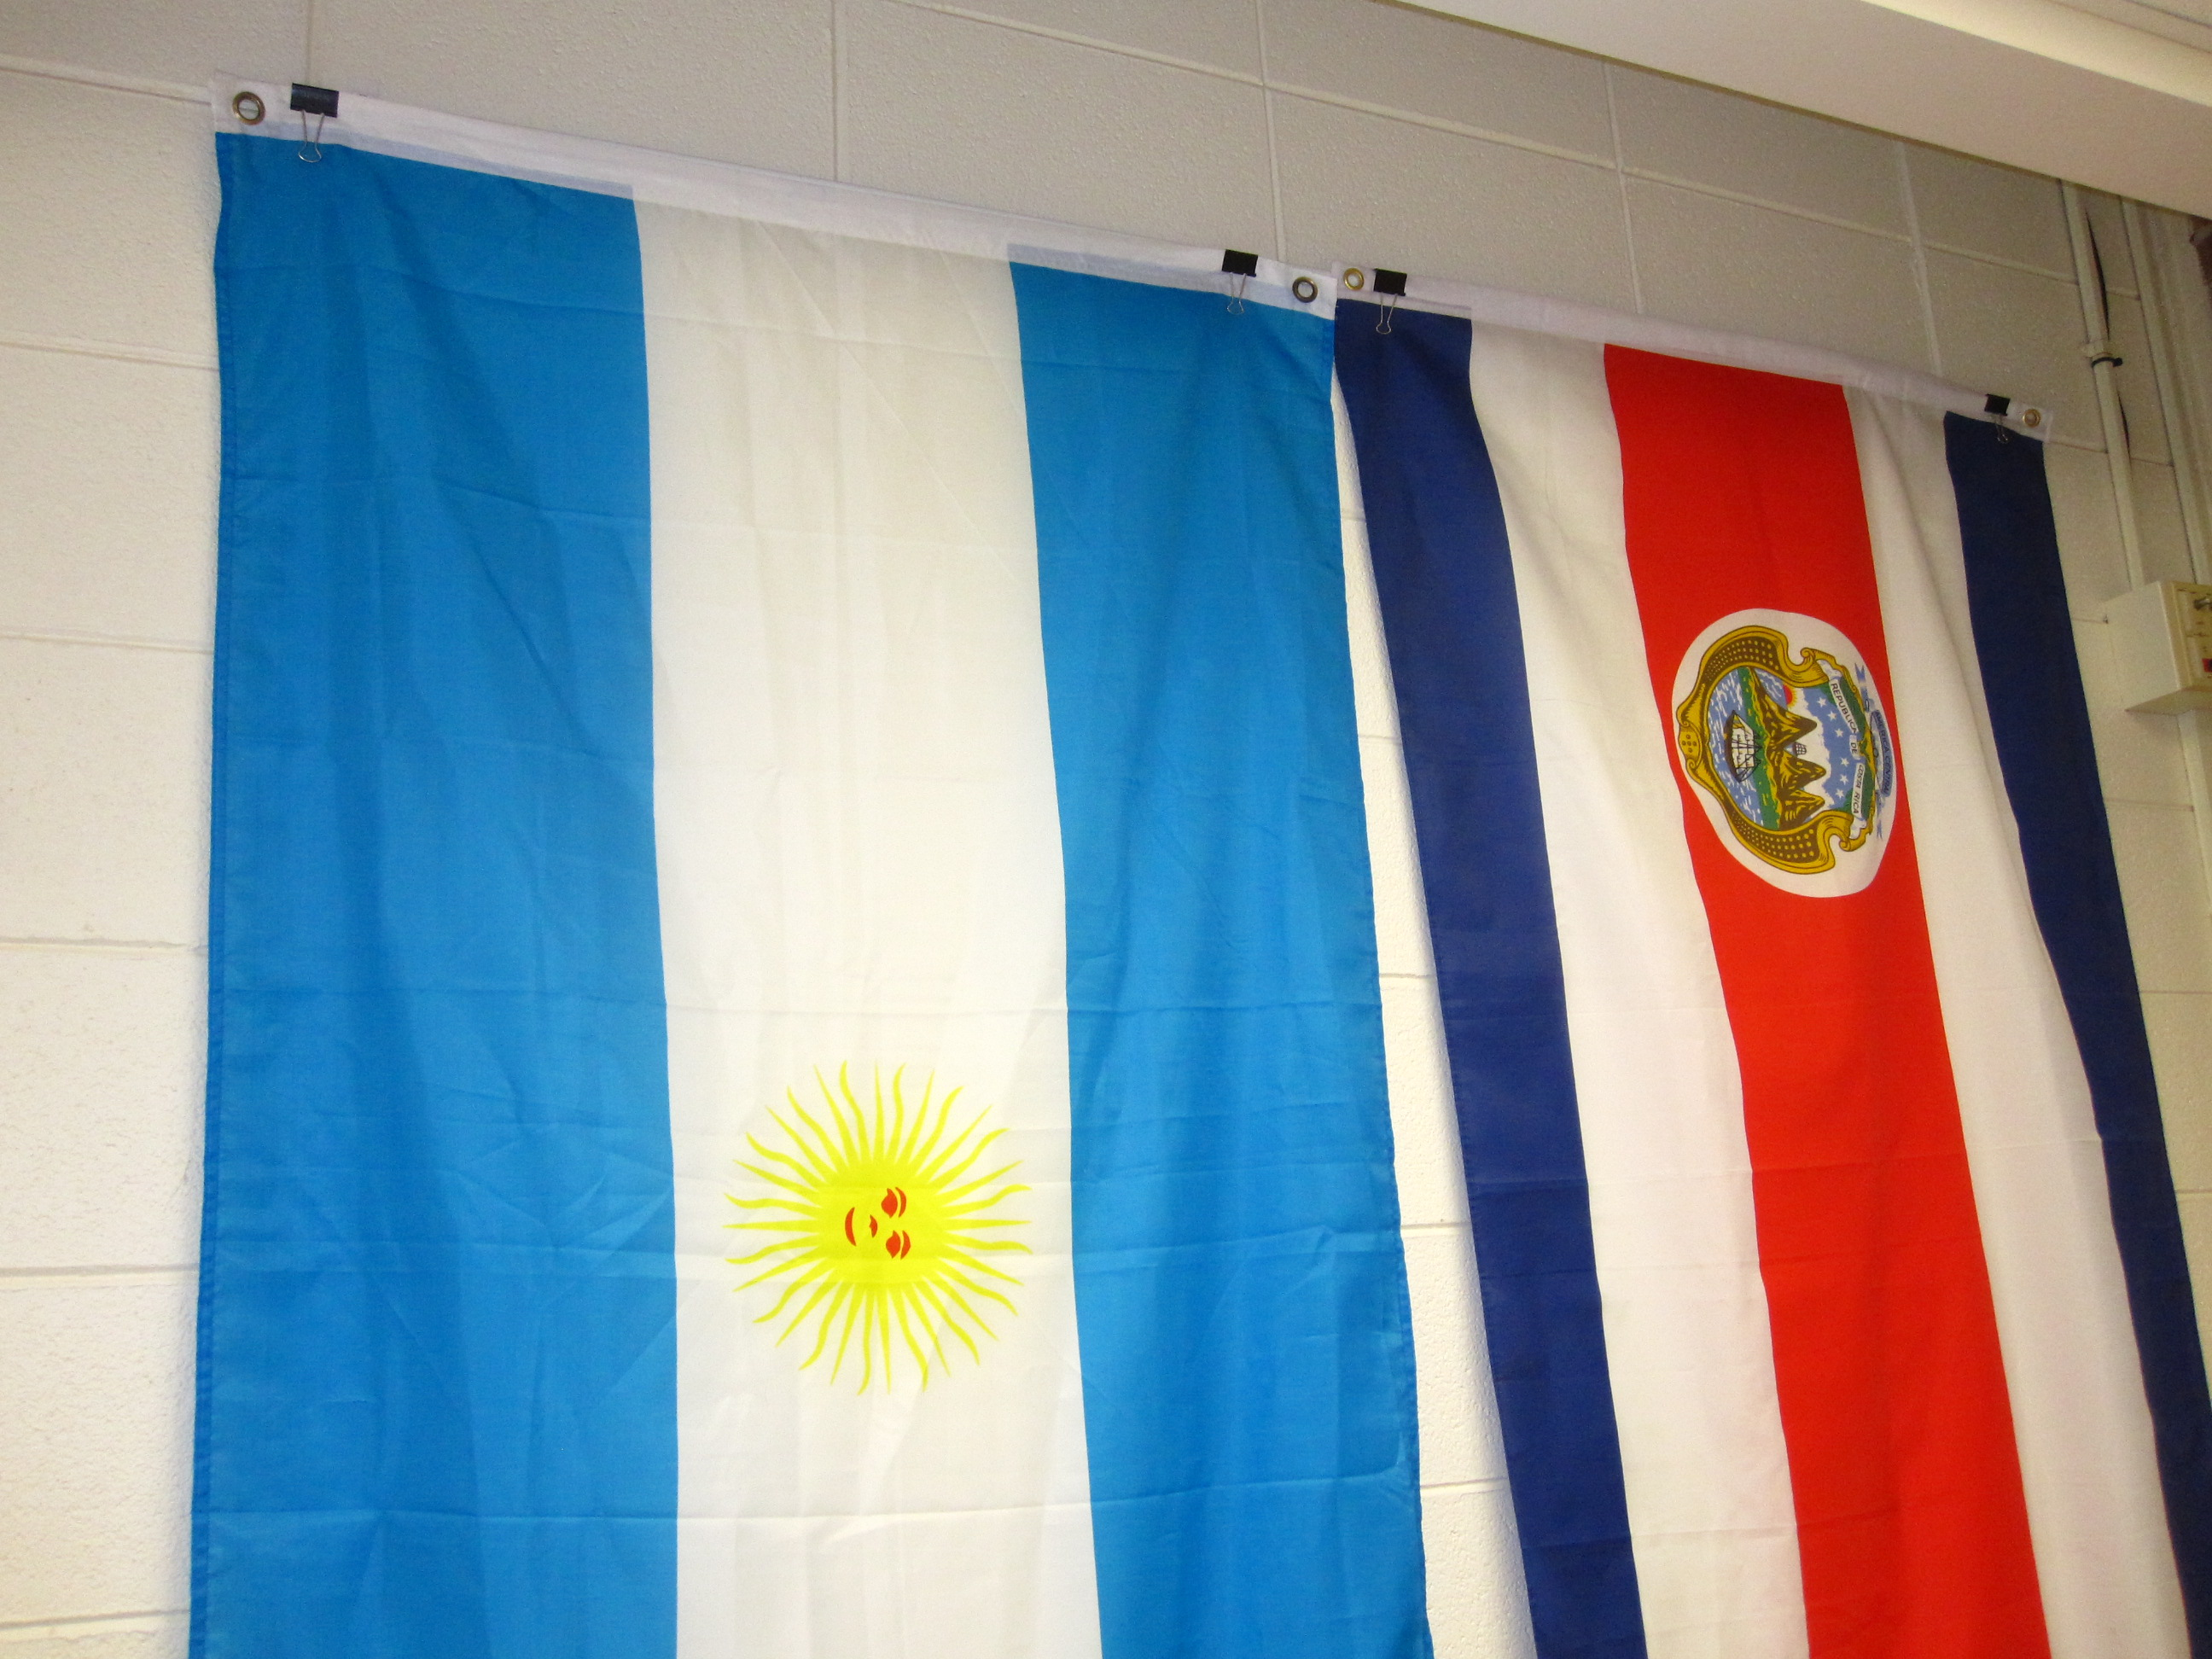 Hanging Up Flags In Classroom Spanishplans Org